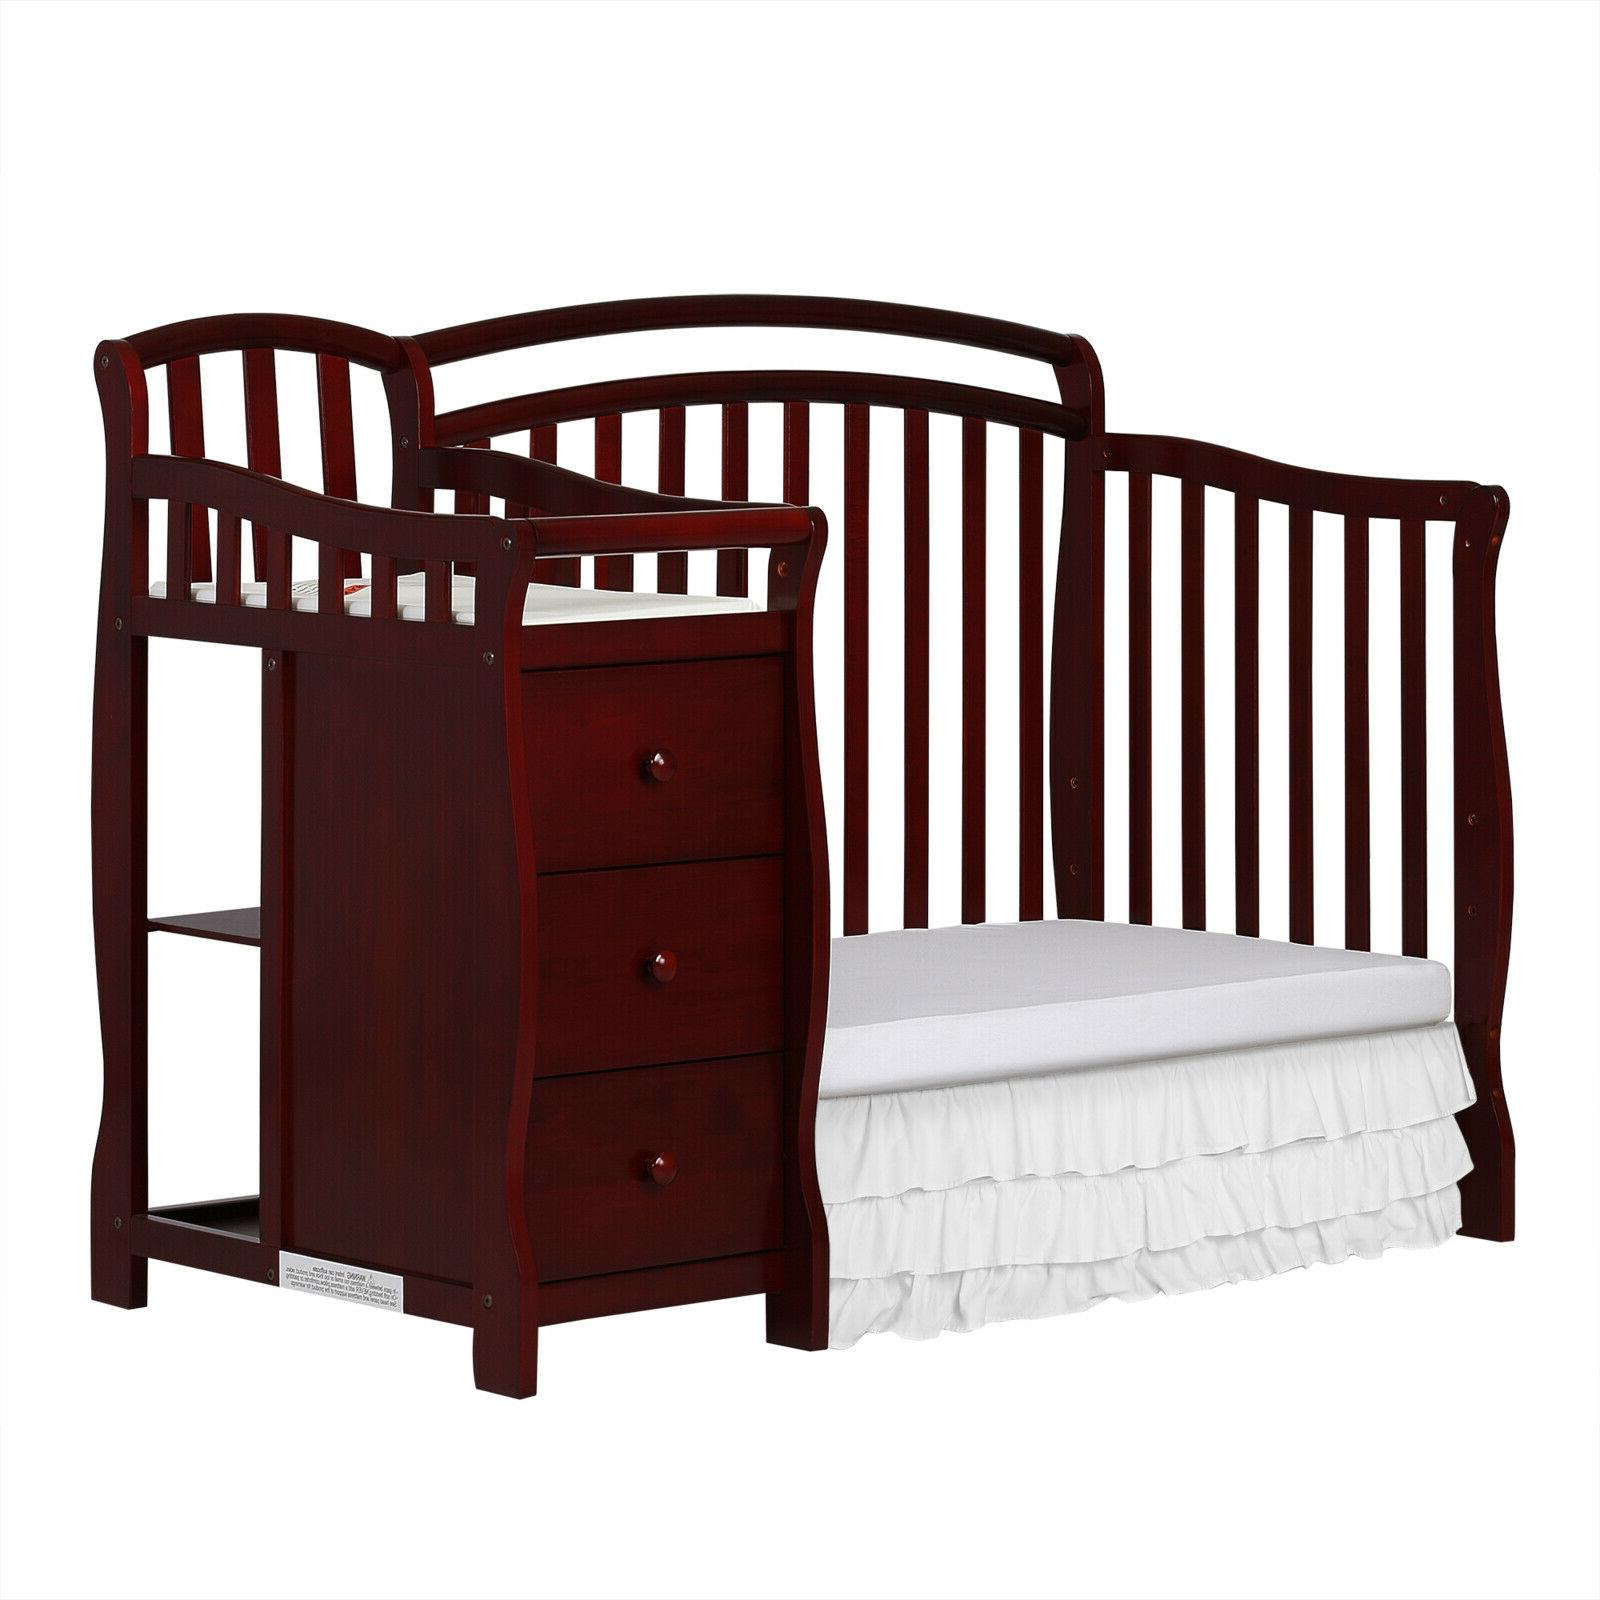 Baby Bed 4-in-1 Crib and Table, Cherry